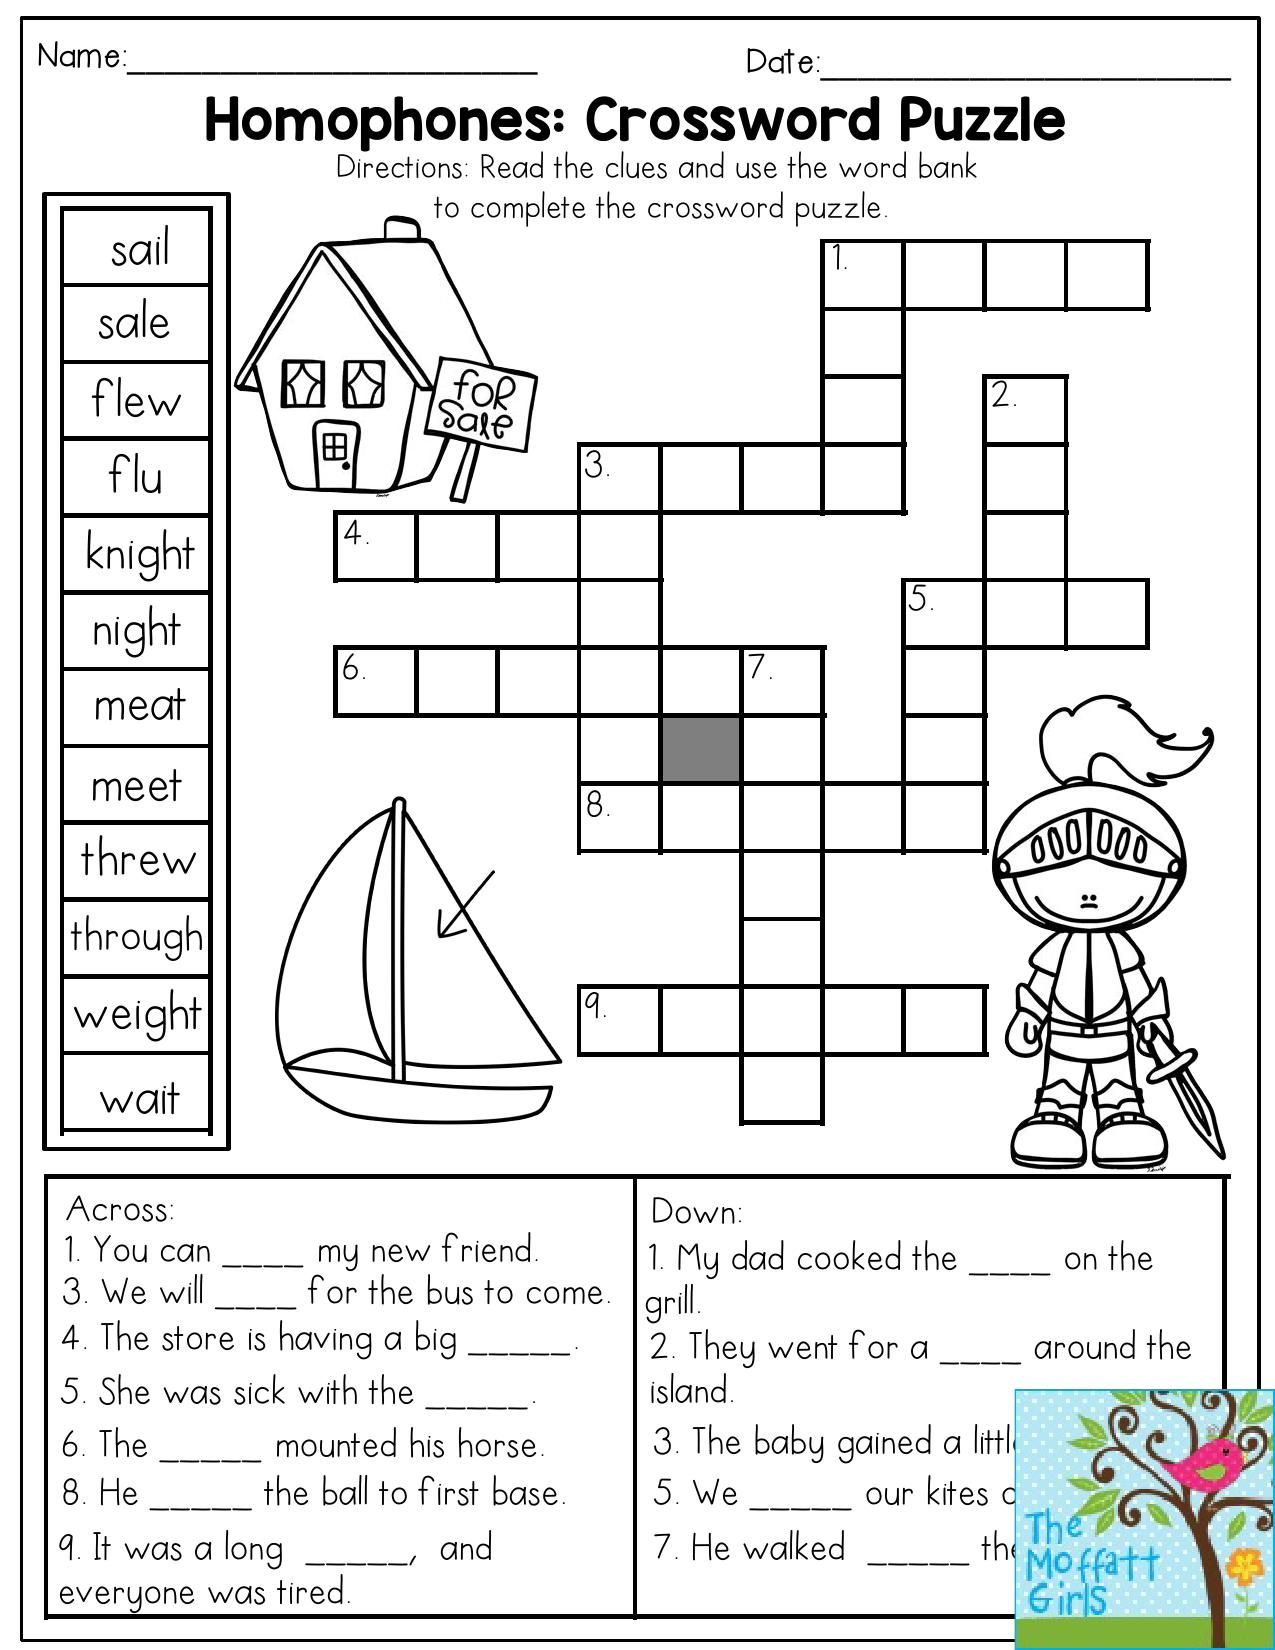 Homophones: Crossword Puzzle- Read The Clues And Use The Word Bank - Printable Crossword Puzzles For Grade 1